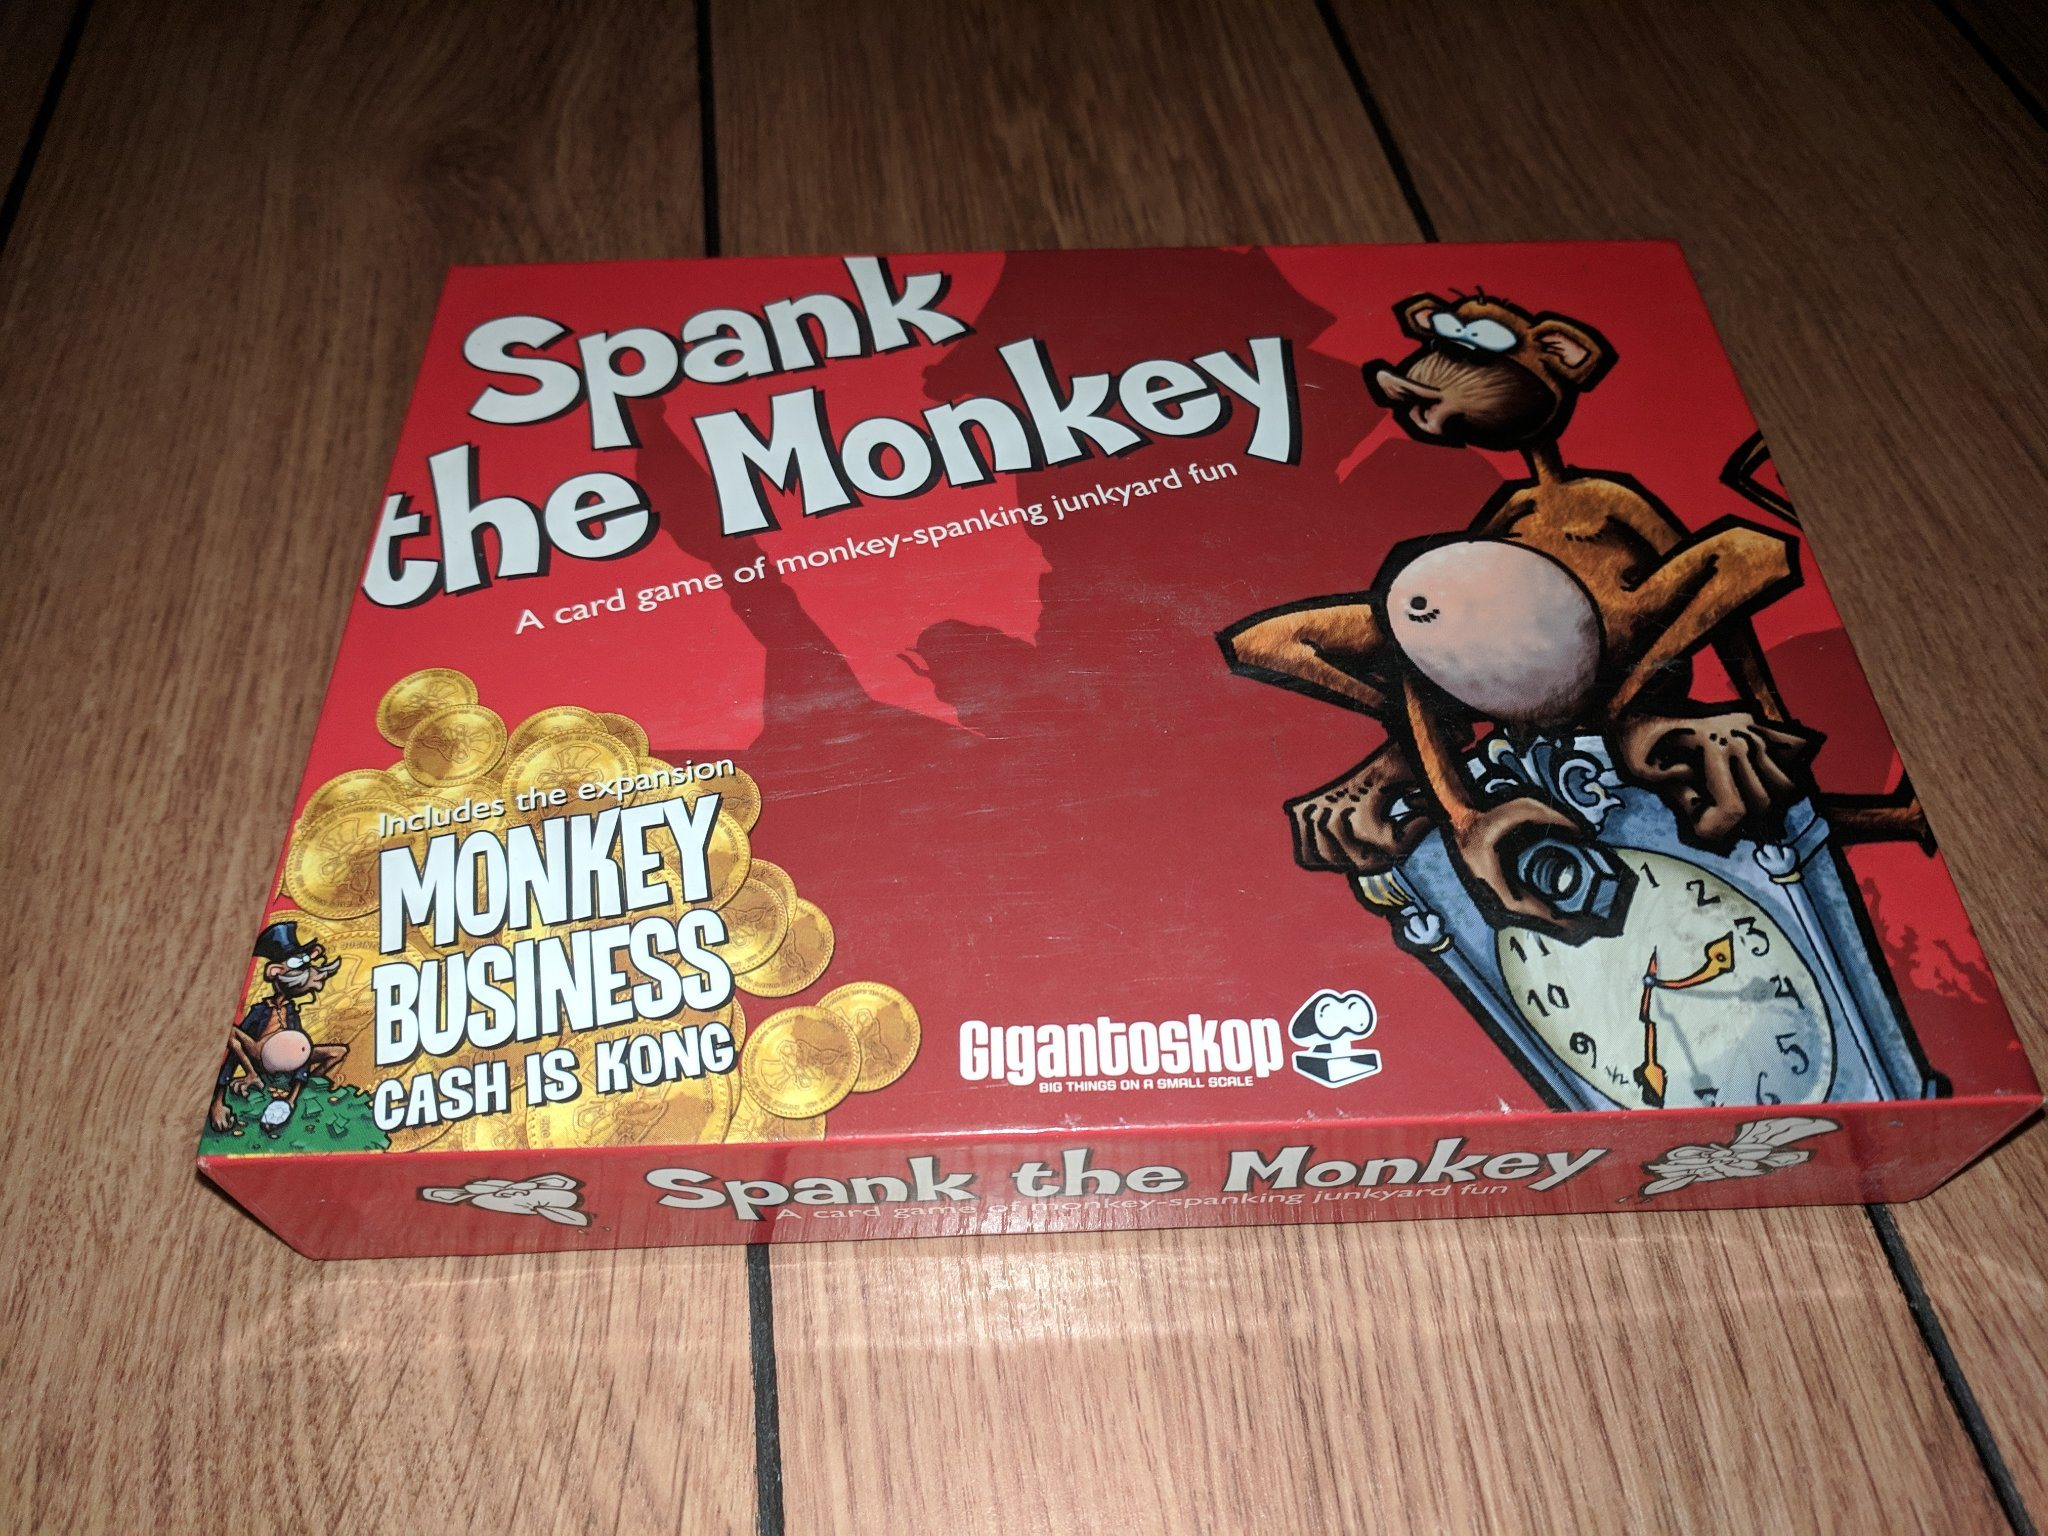 Spank ther monkey possible